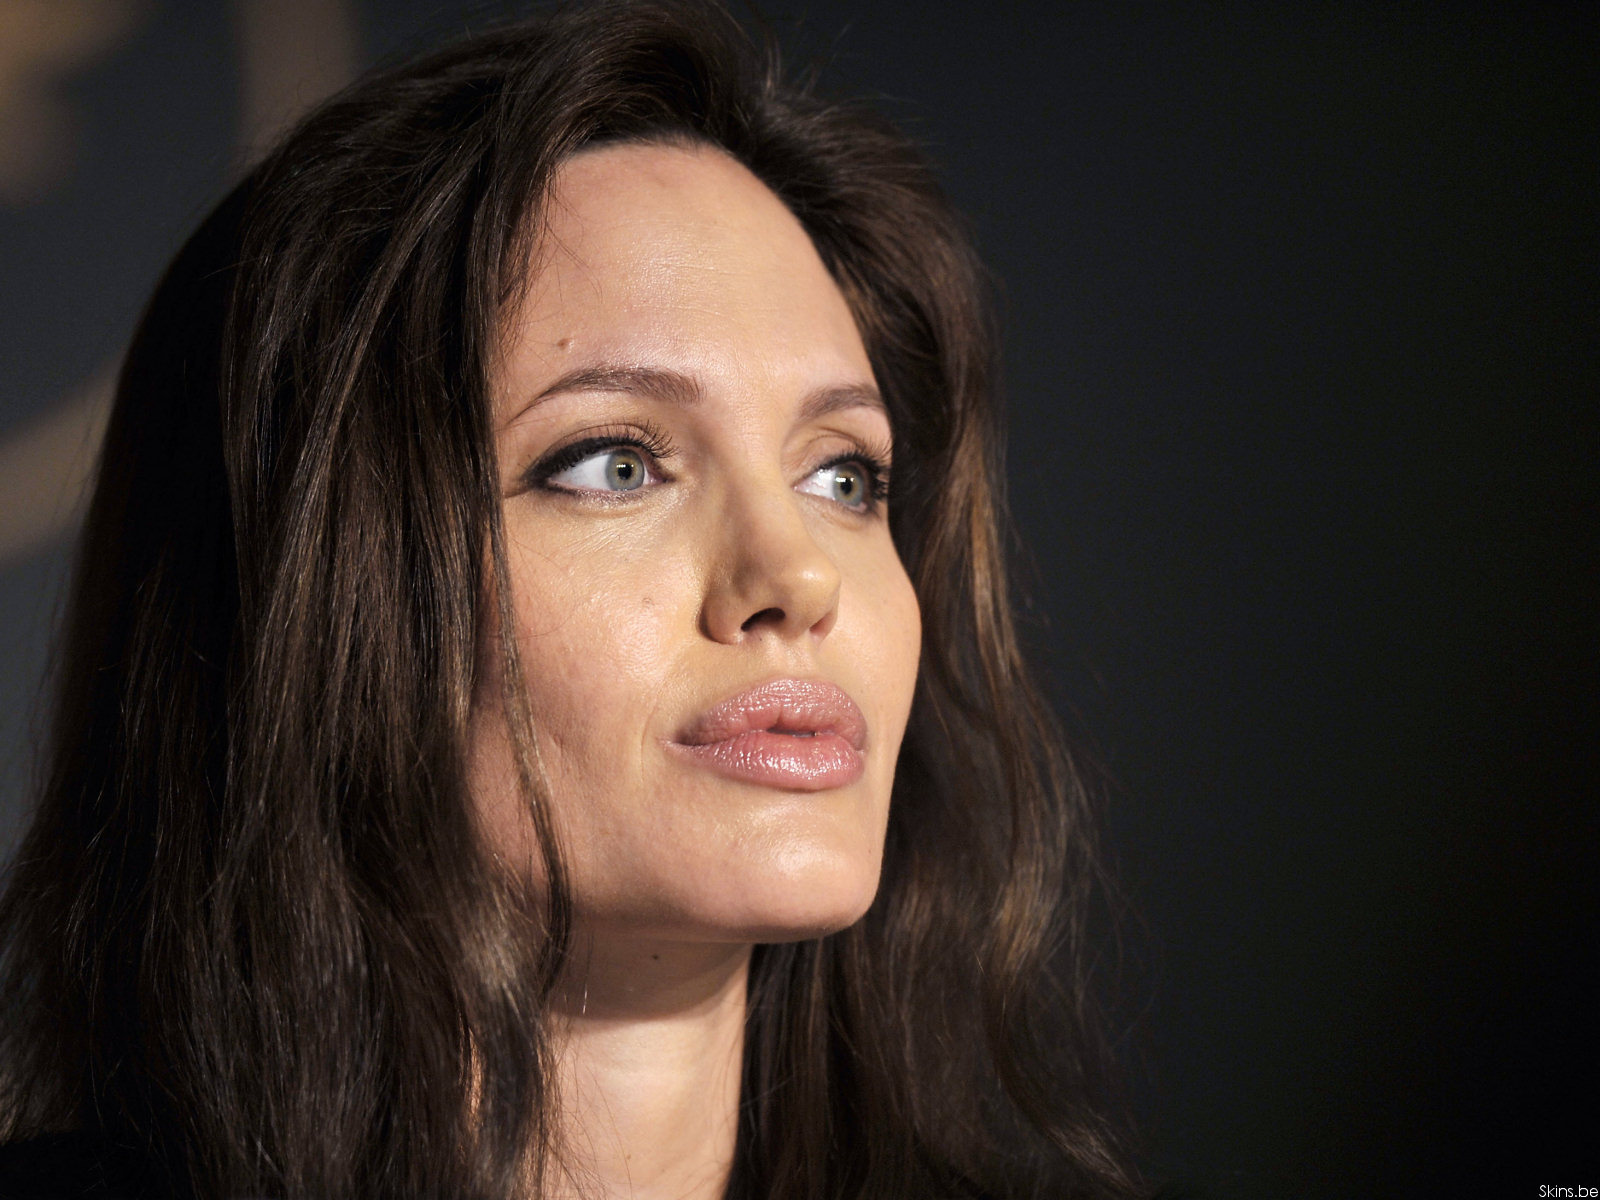 Download Hq Angelina Jolie Wallpaper Celebrities Female